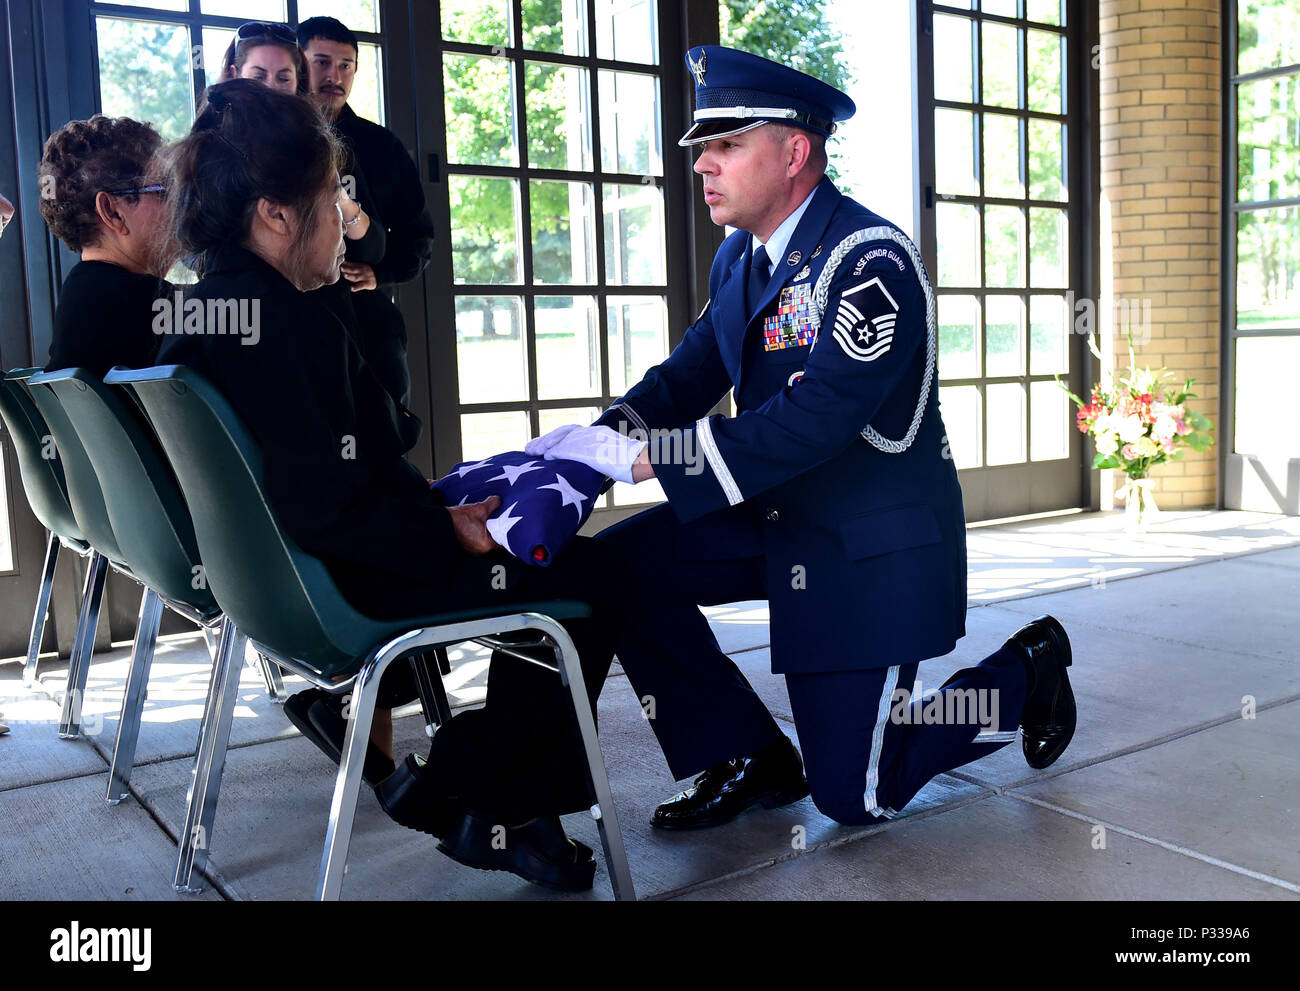 Master Sgt. Wolfram Stumpf, U.S. Air Force Mile High Honor Guard member, presents a widow an American flag during the funeral for her husband August 30, 2016, at Fort Logan National Cemetery, Colo. The American flag is presented during a military honors funeral as a lasting tribute to the veteran's family. (U.S. Air Force photo by Airman 1st Class Gabrielle Spradling/Released) Stock Photo